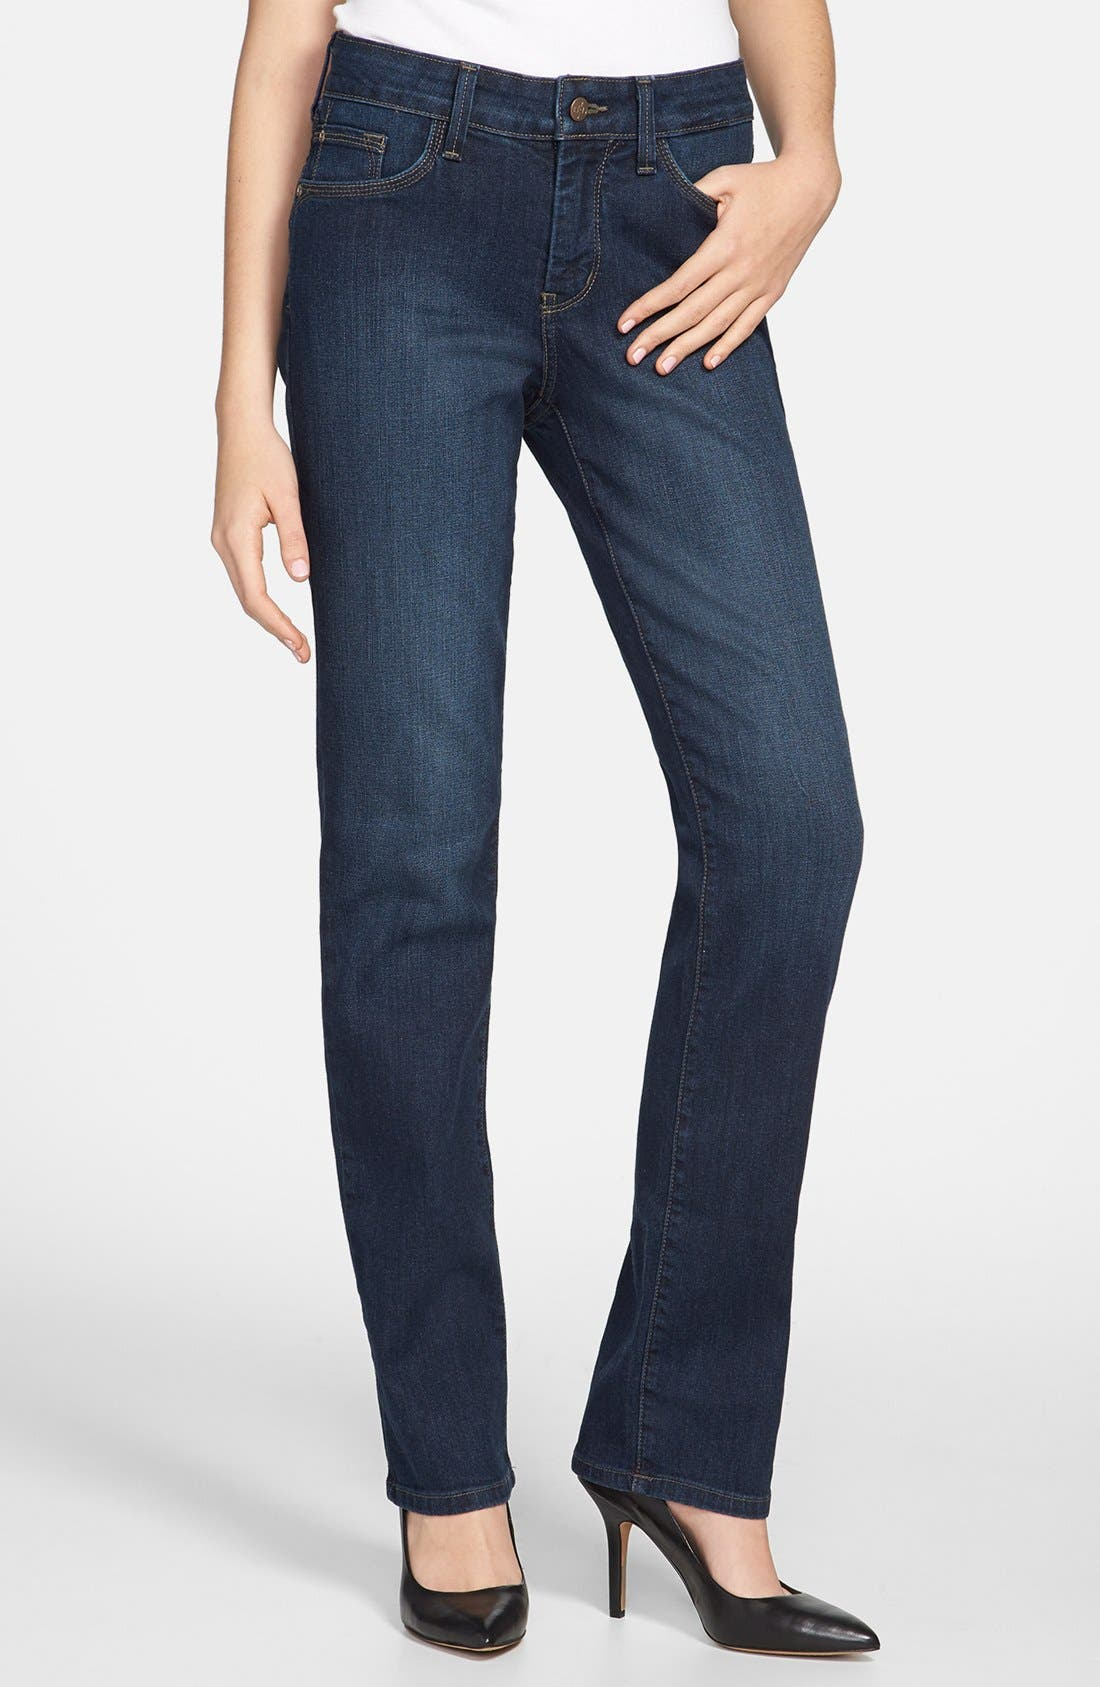 Alternate Image 1 Selected - NYDJ 'Marilyn' Stretch Straight Leg Jeans (Tustin) (Regular & Petite)